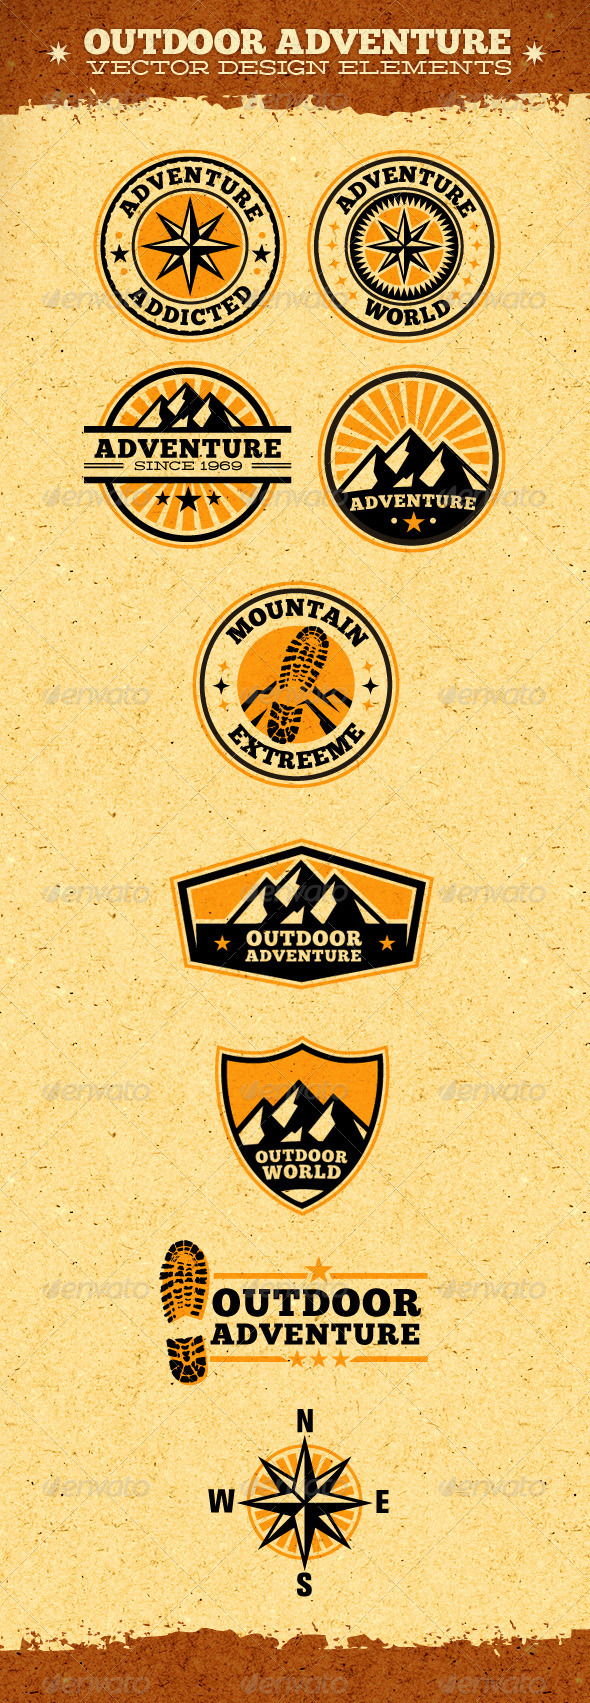 Outdoor Adventure Vector Design Elements - Travel Conceptual